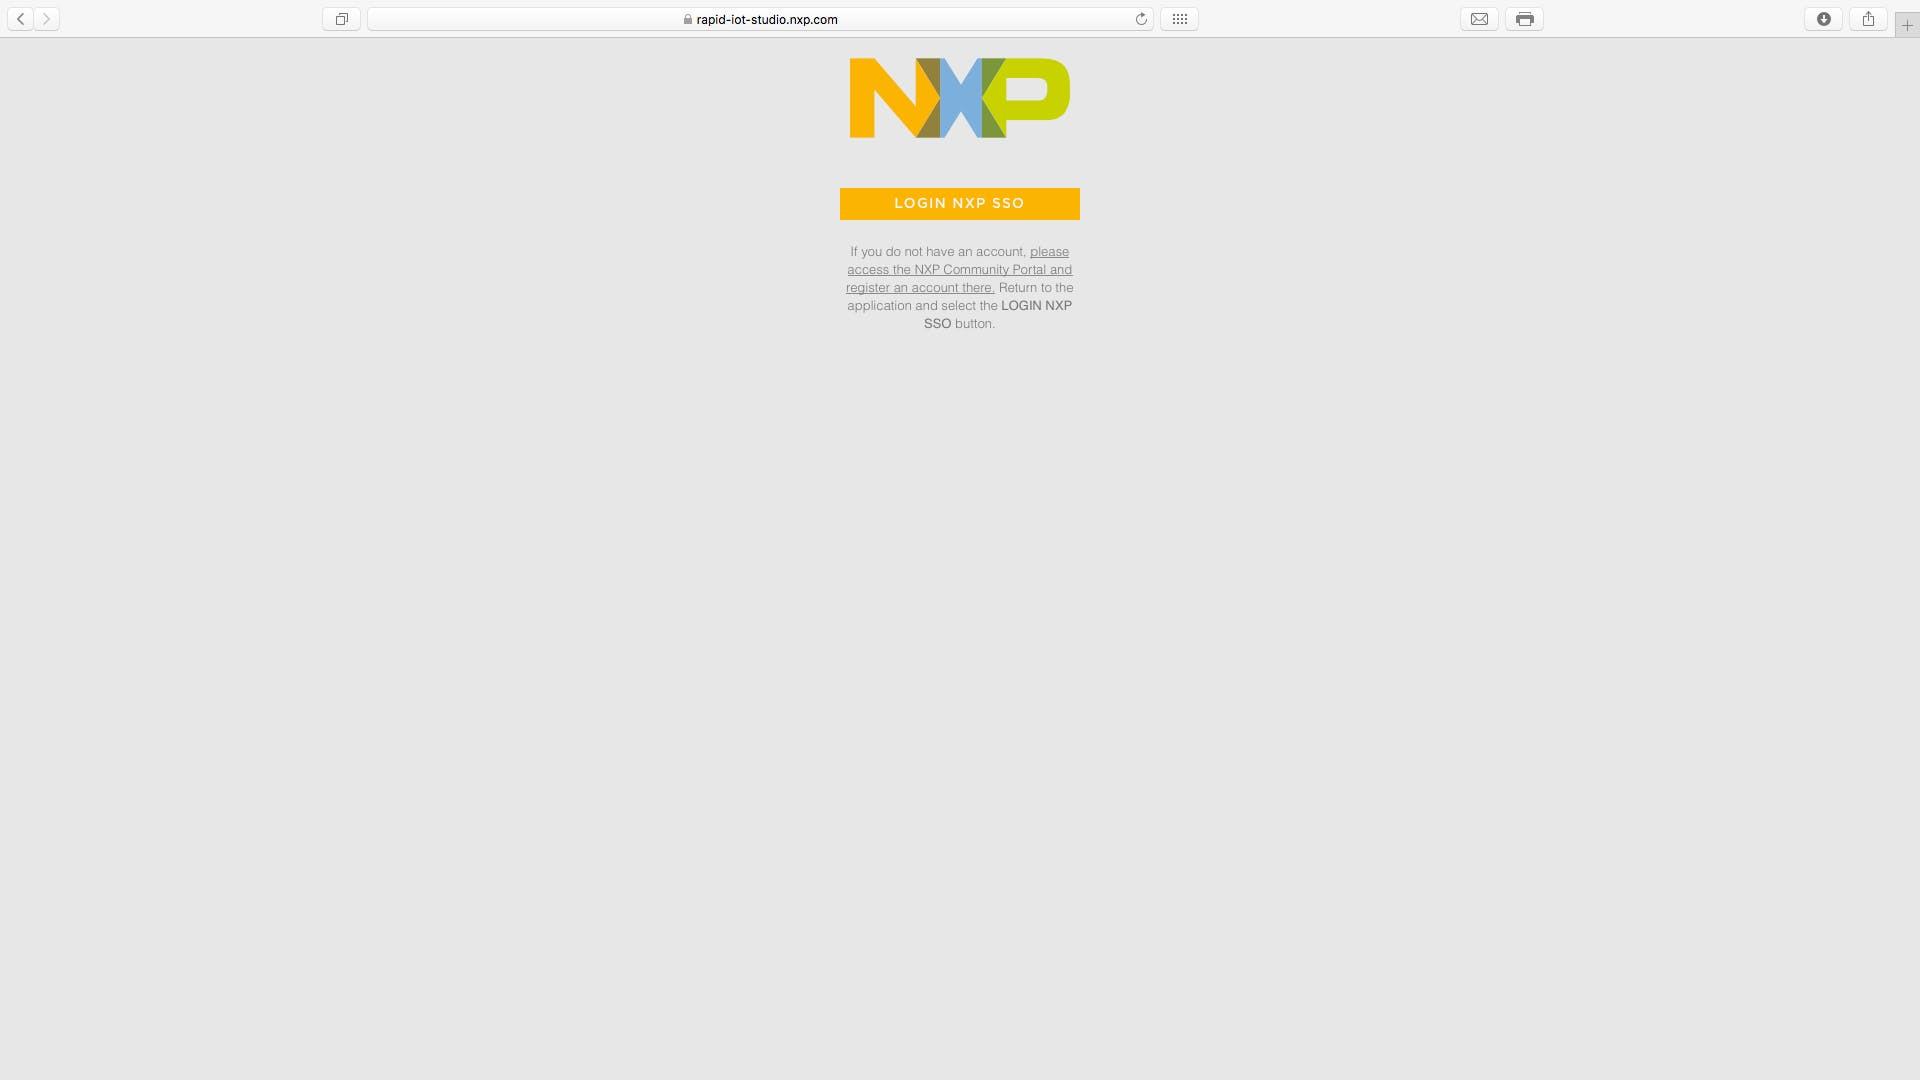 sign in with your NXP Account